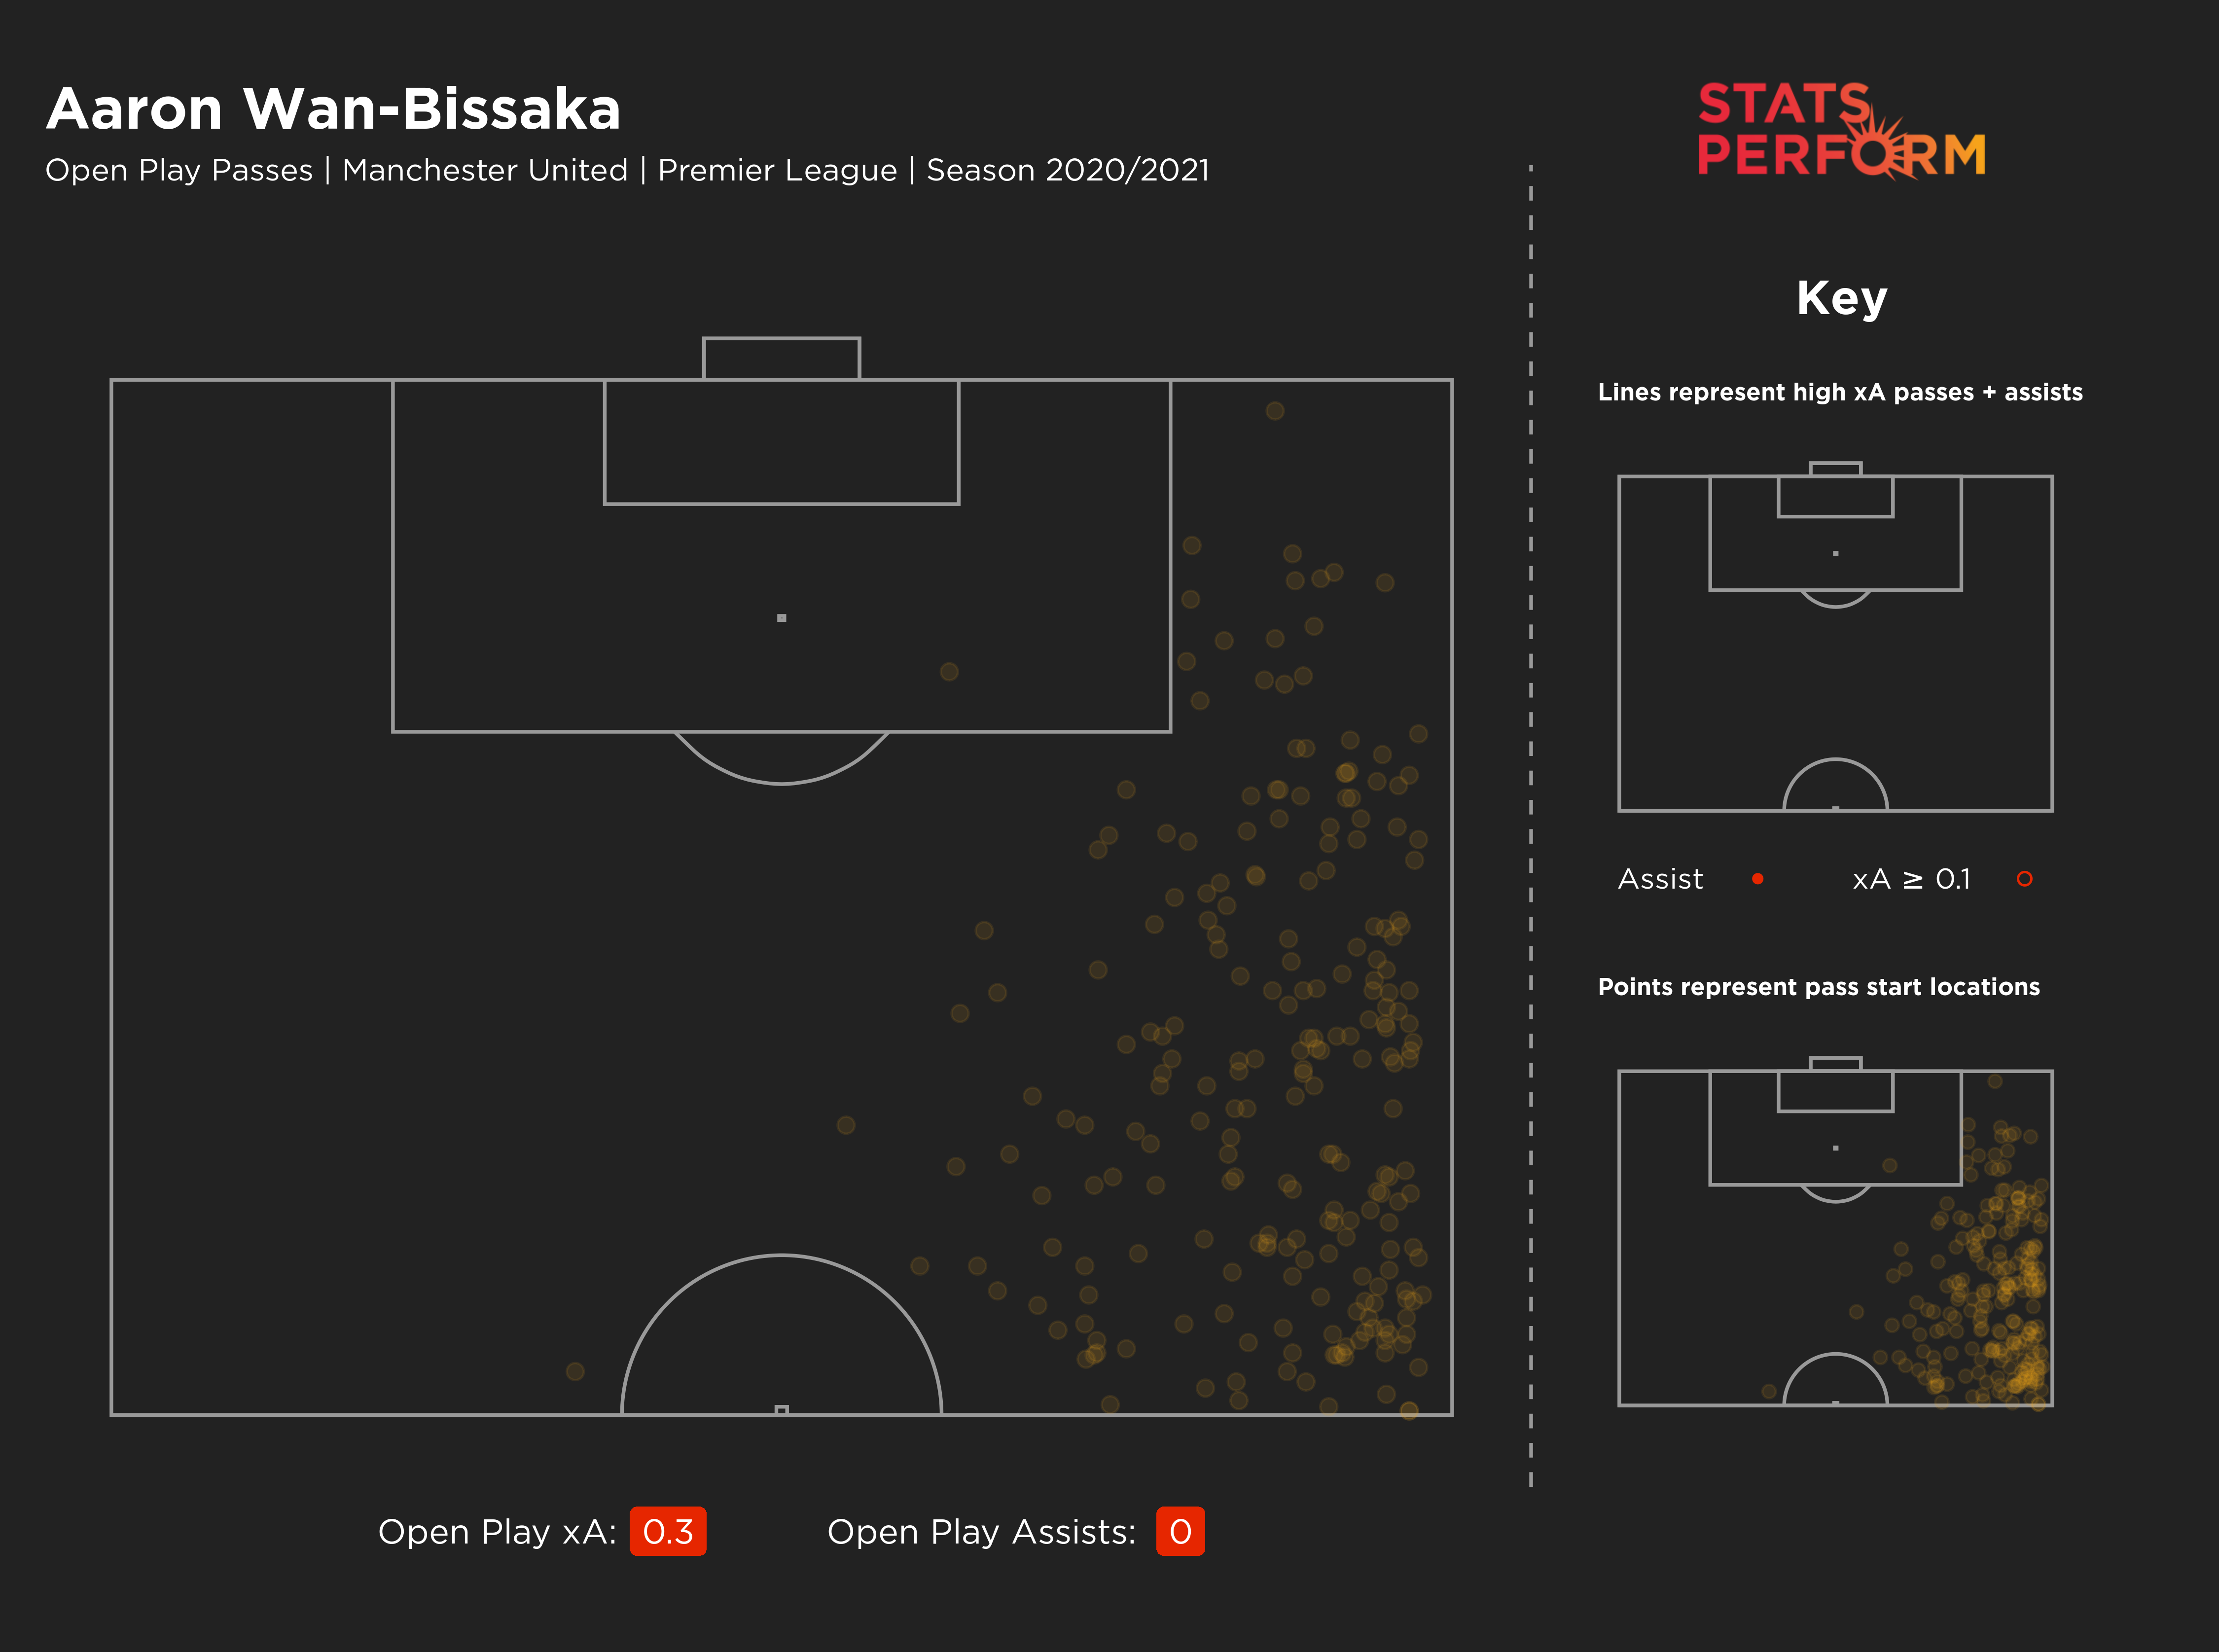 Aaron Wan-Bissaka has no assists this season, with his expected assists map highlighting a lack of attacking threat